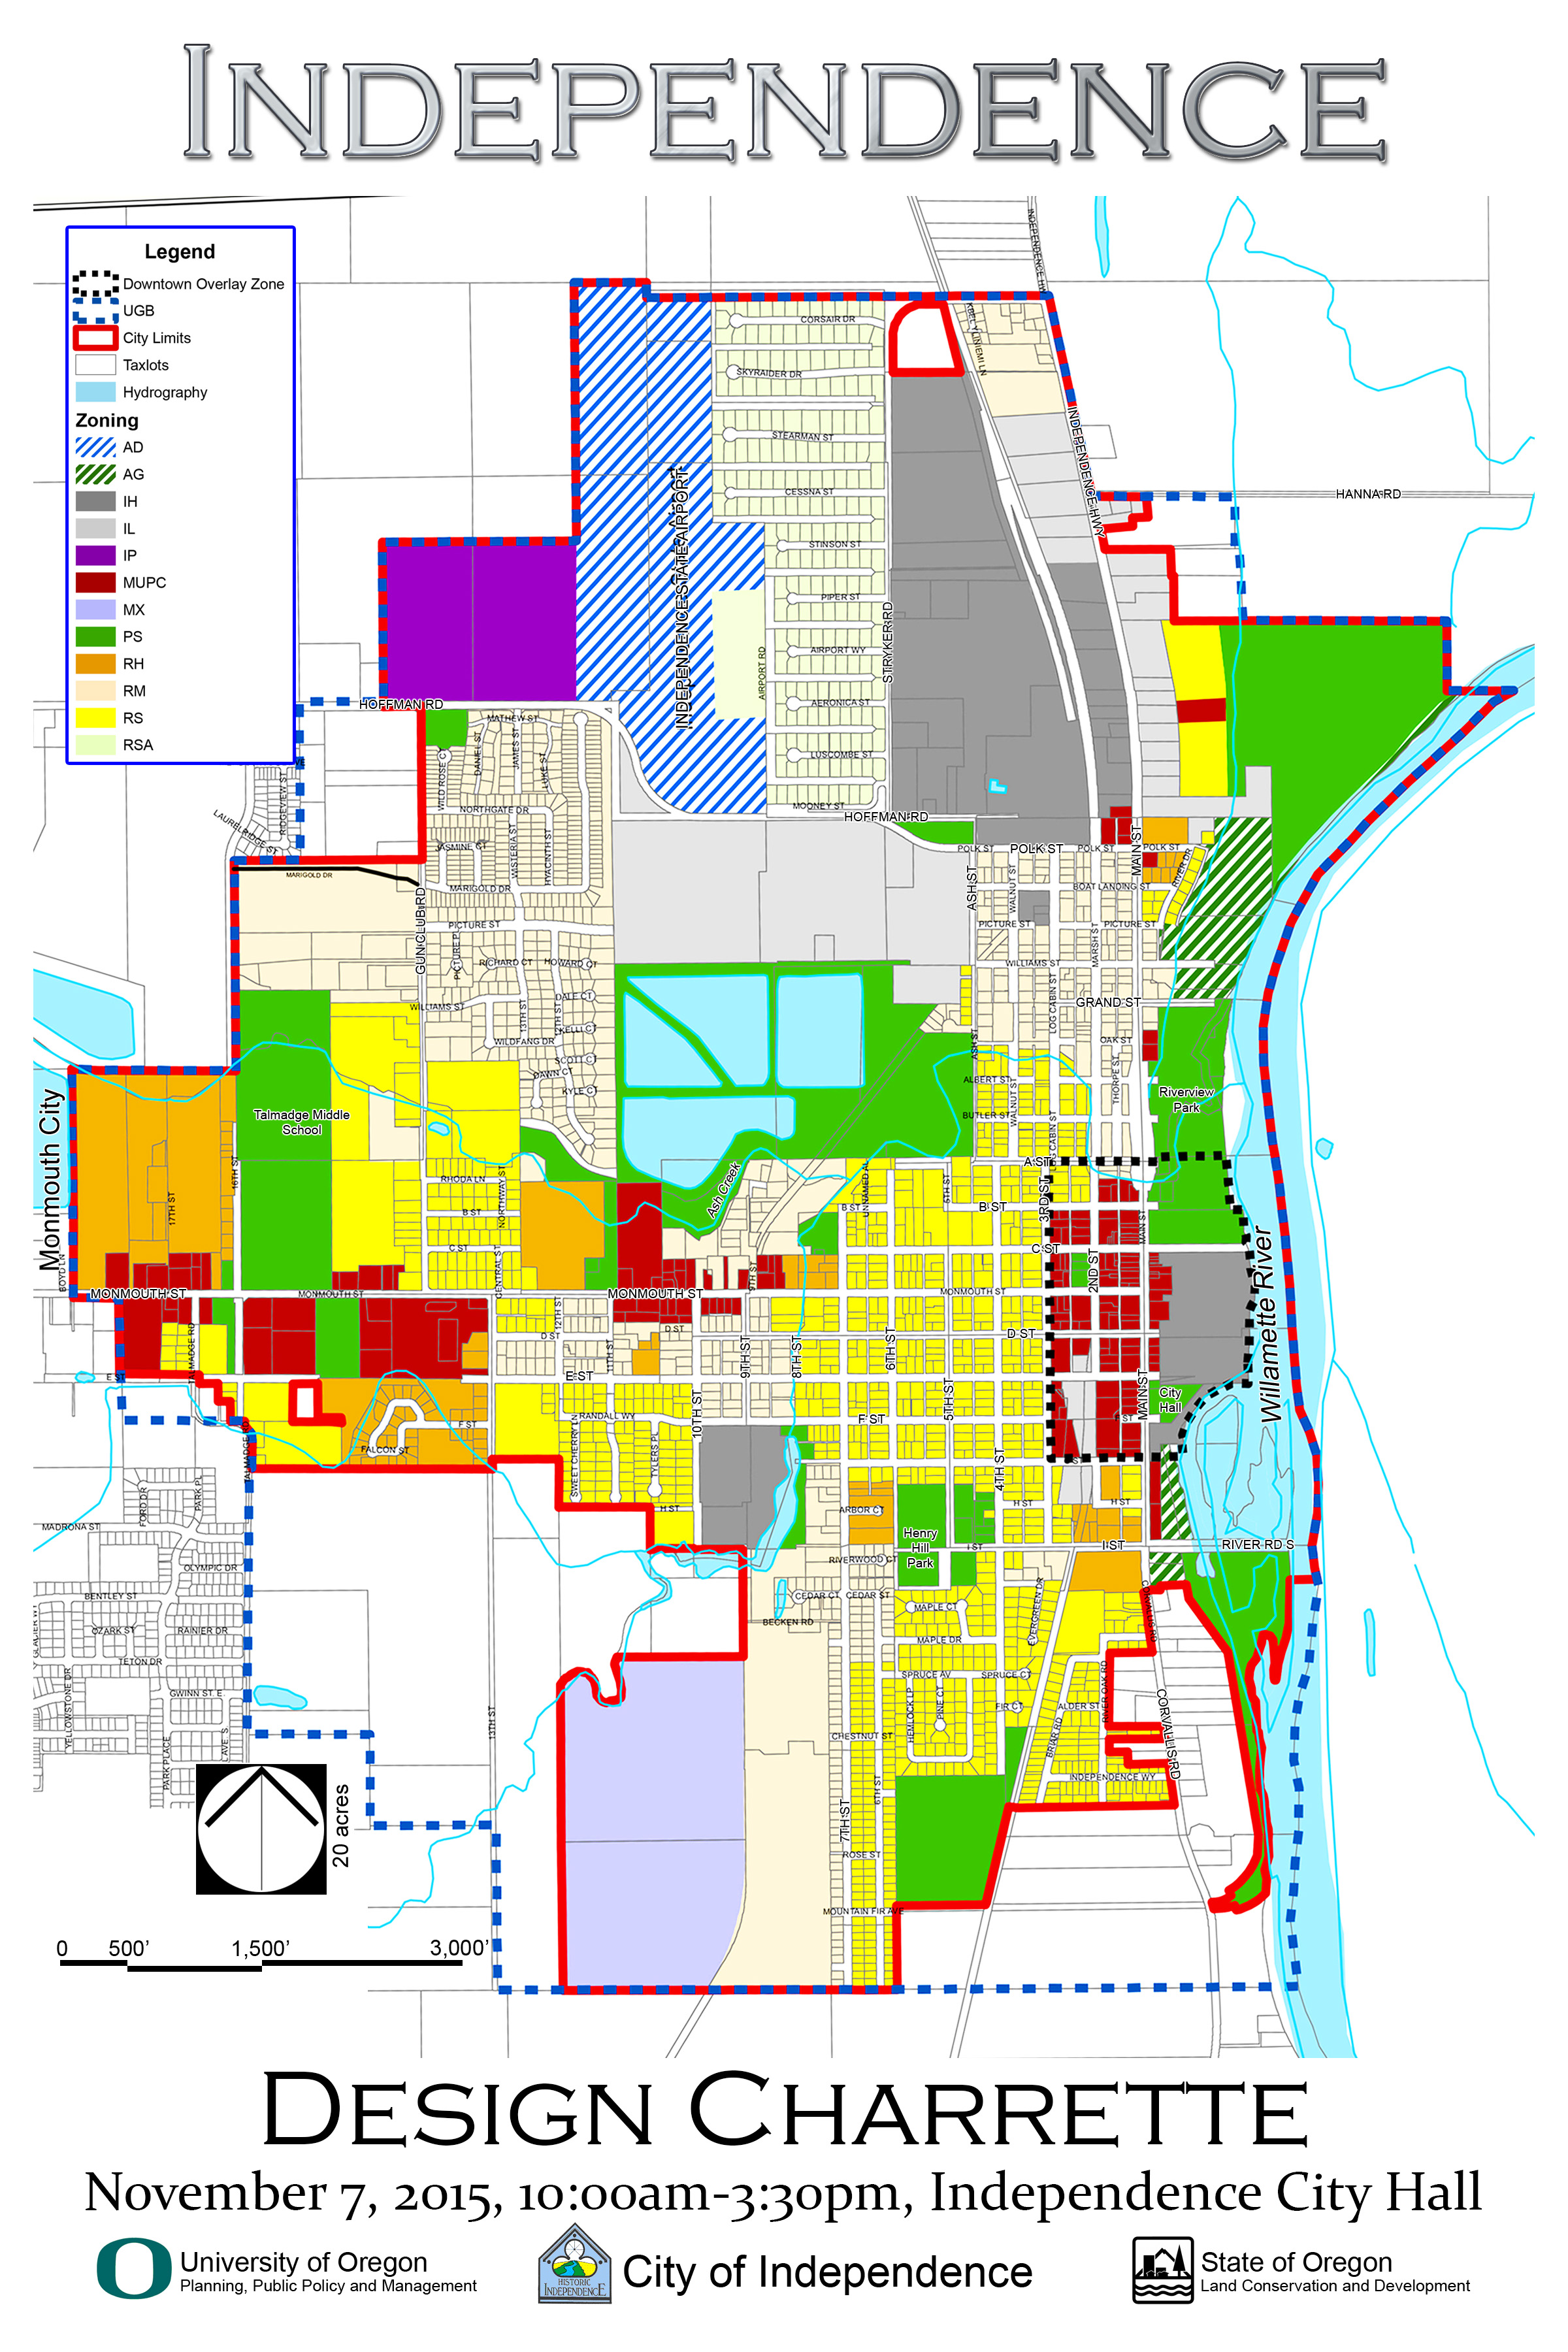 Independence Design Charrette Zoning Map